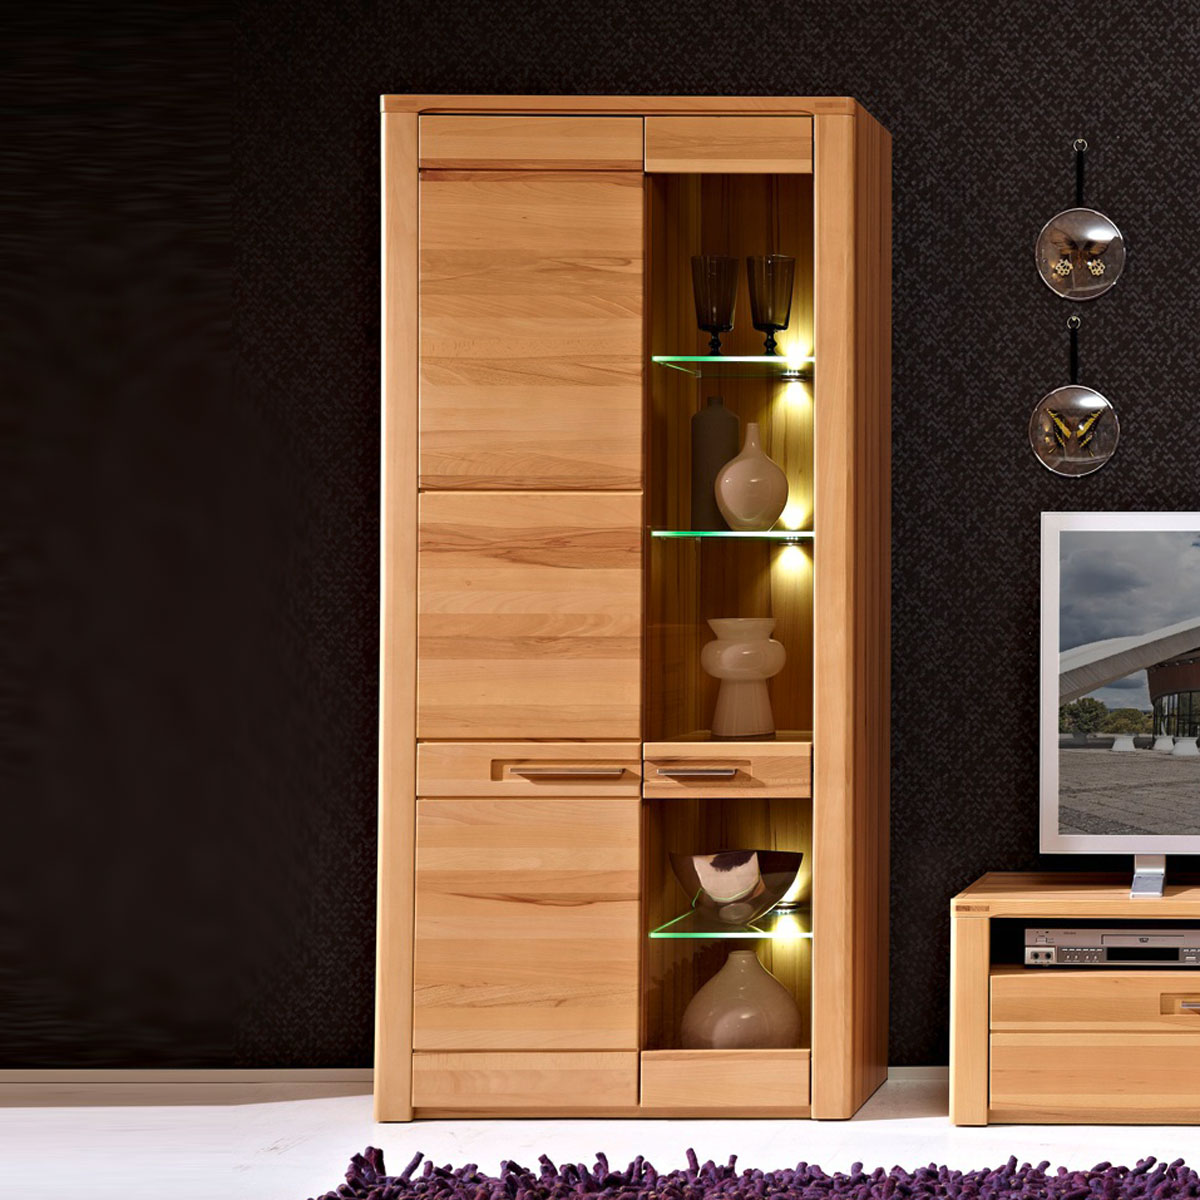 vitrine nature plus wohnzimmer hoher schrank kernbuche massiv lackiert mit led ebay. Black Bedroom Furniture Sets. Home Design Ideas